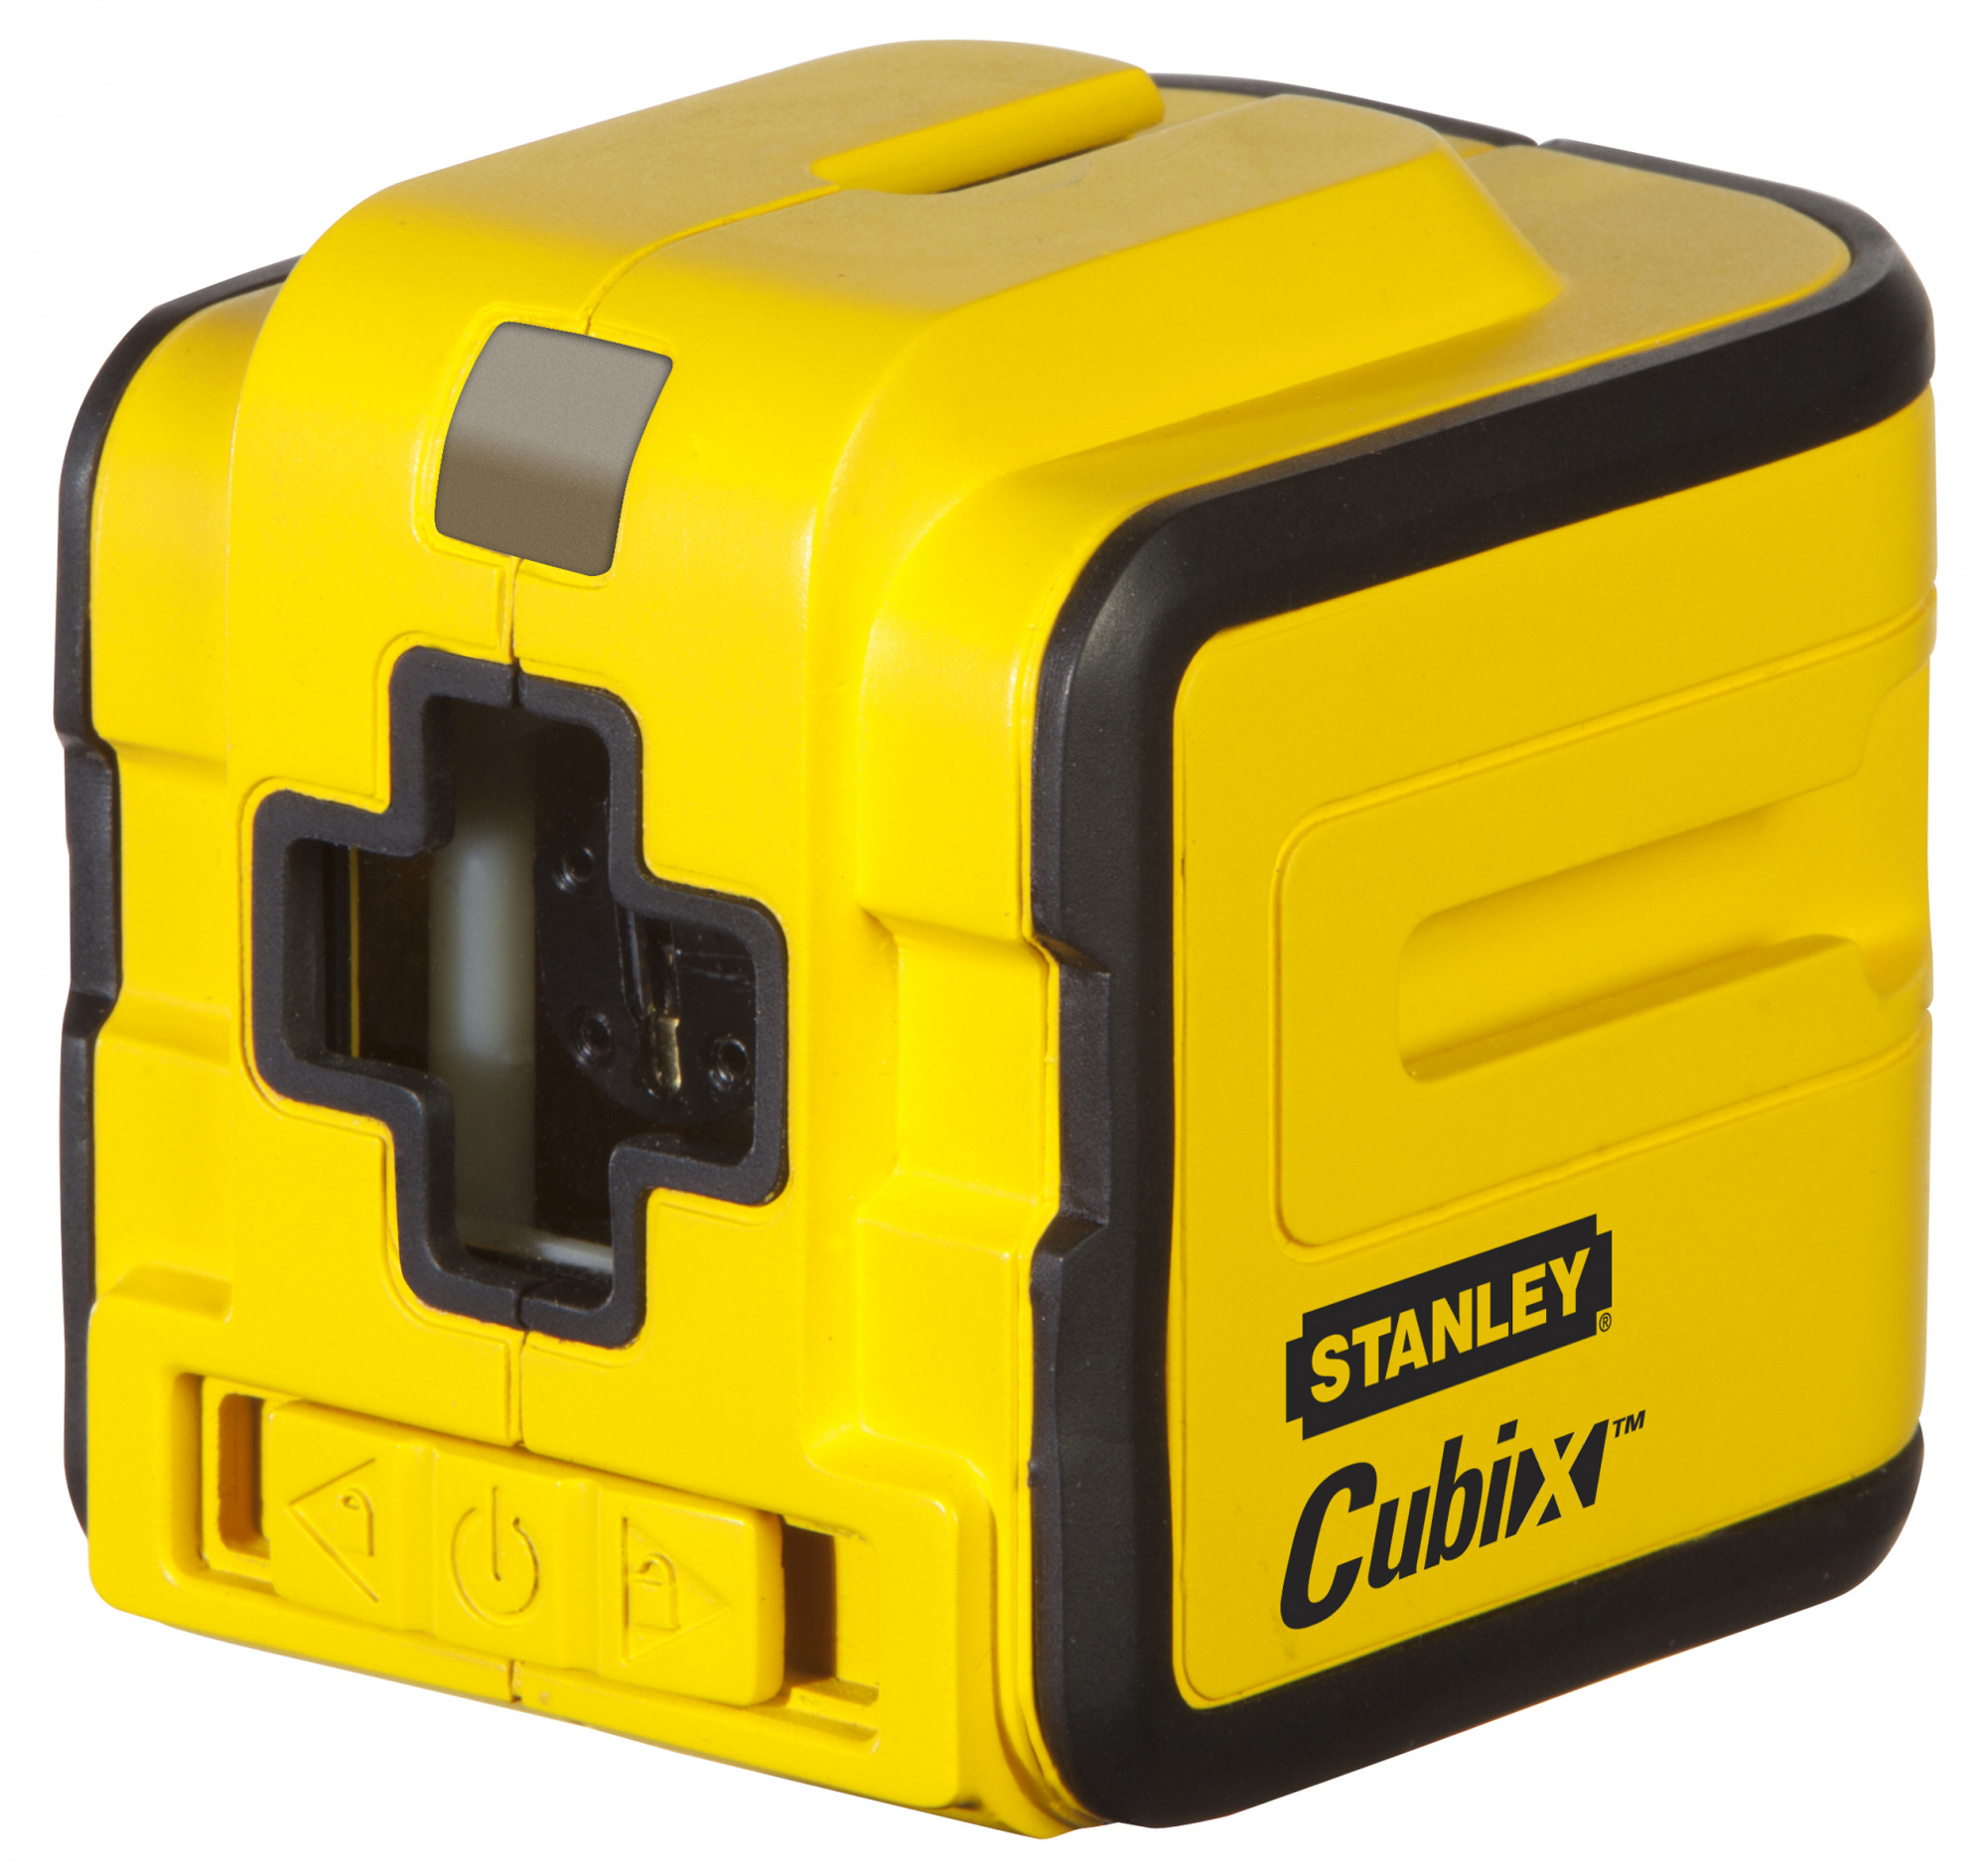 Stanley Cubix (1-77-340) - ������� �������� (Yellow/Black)